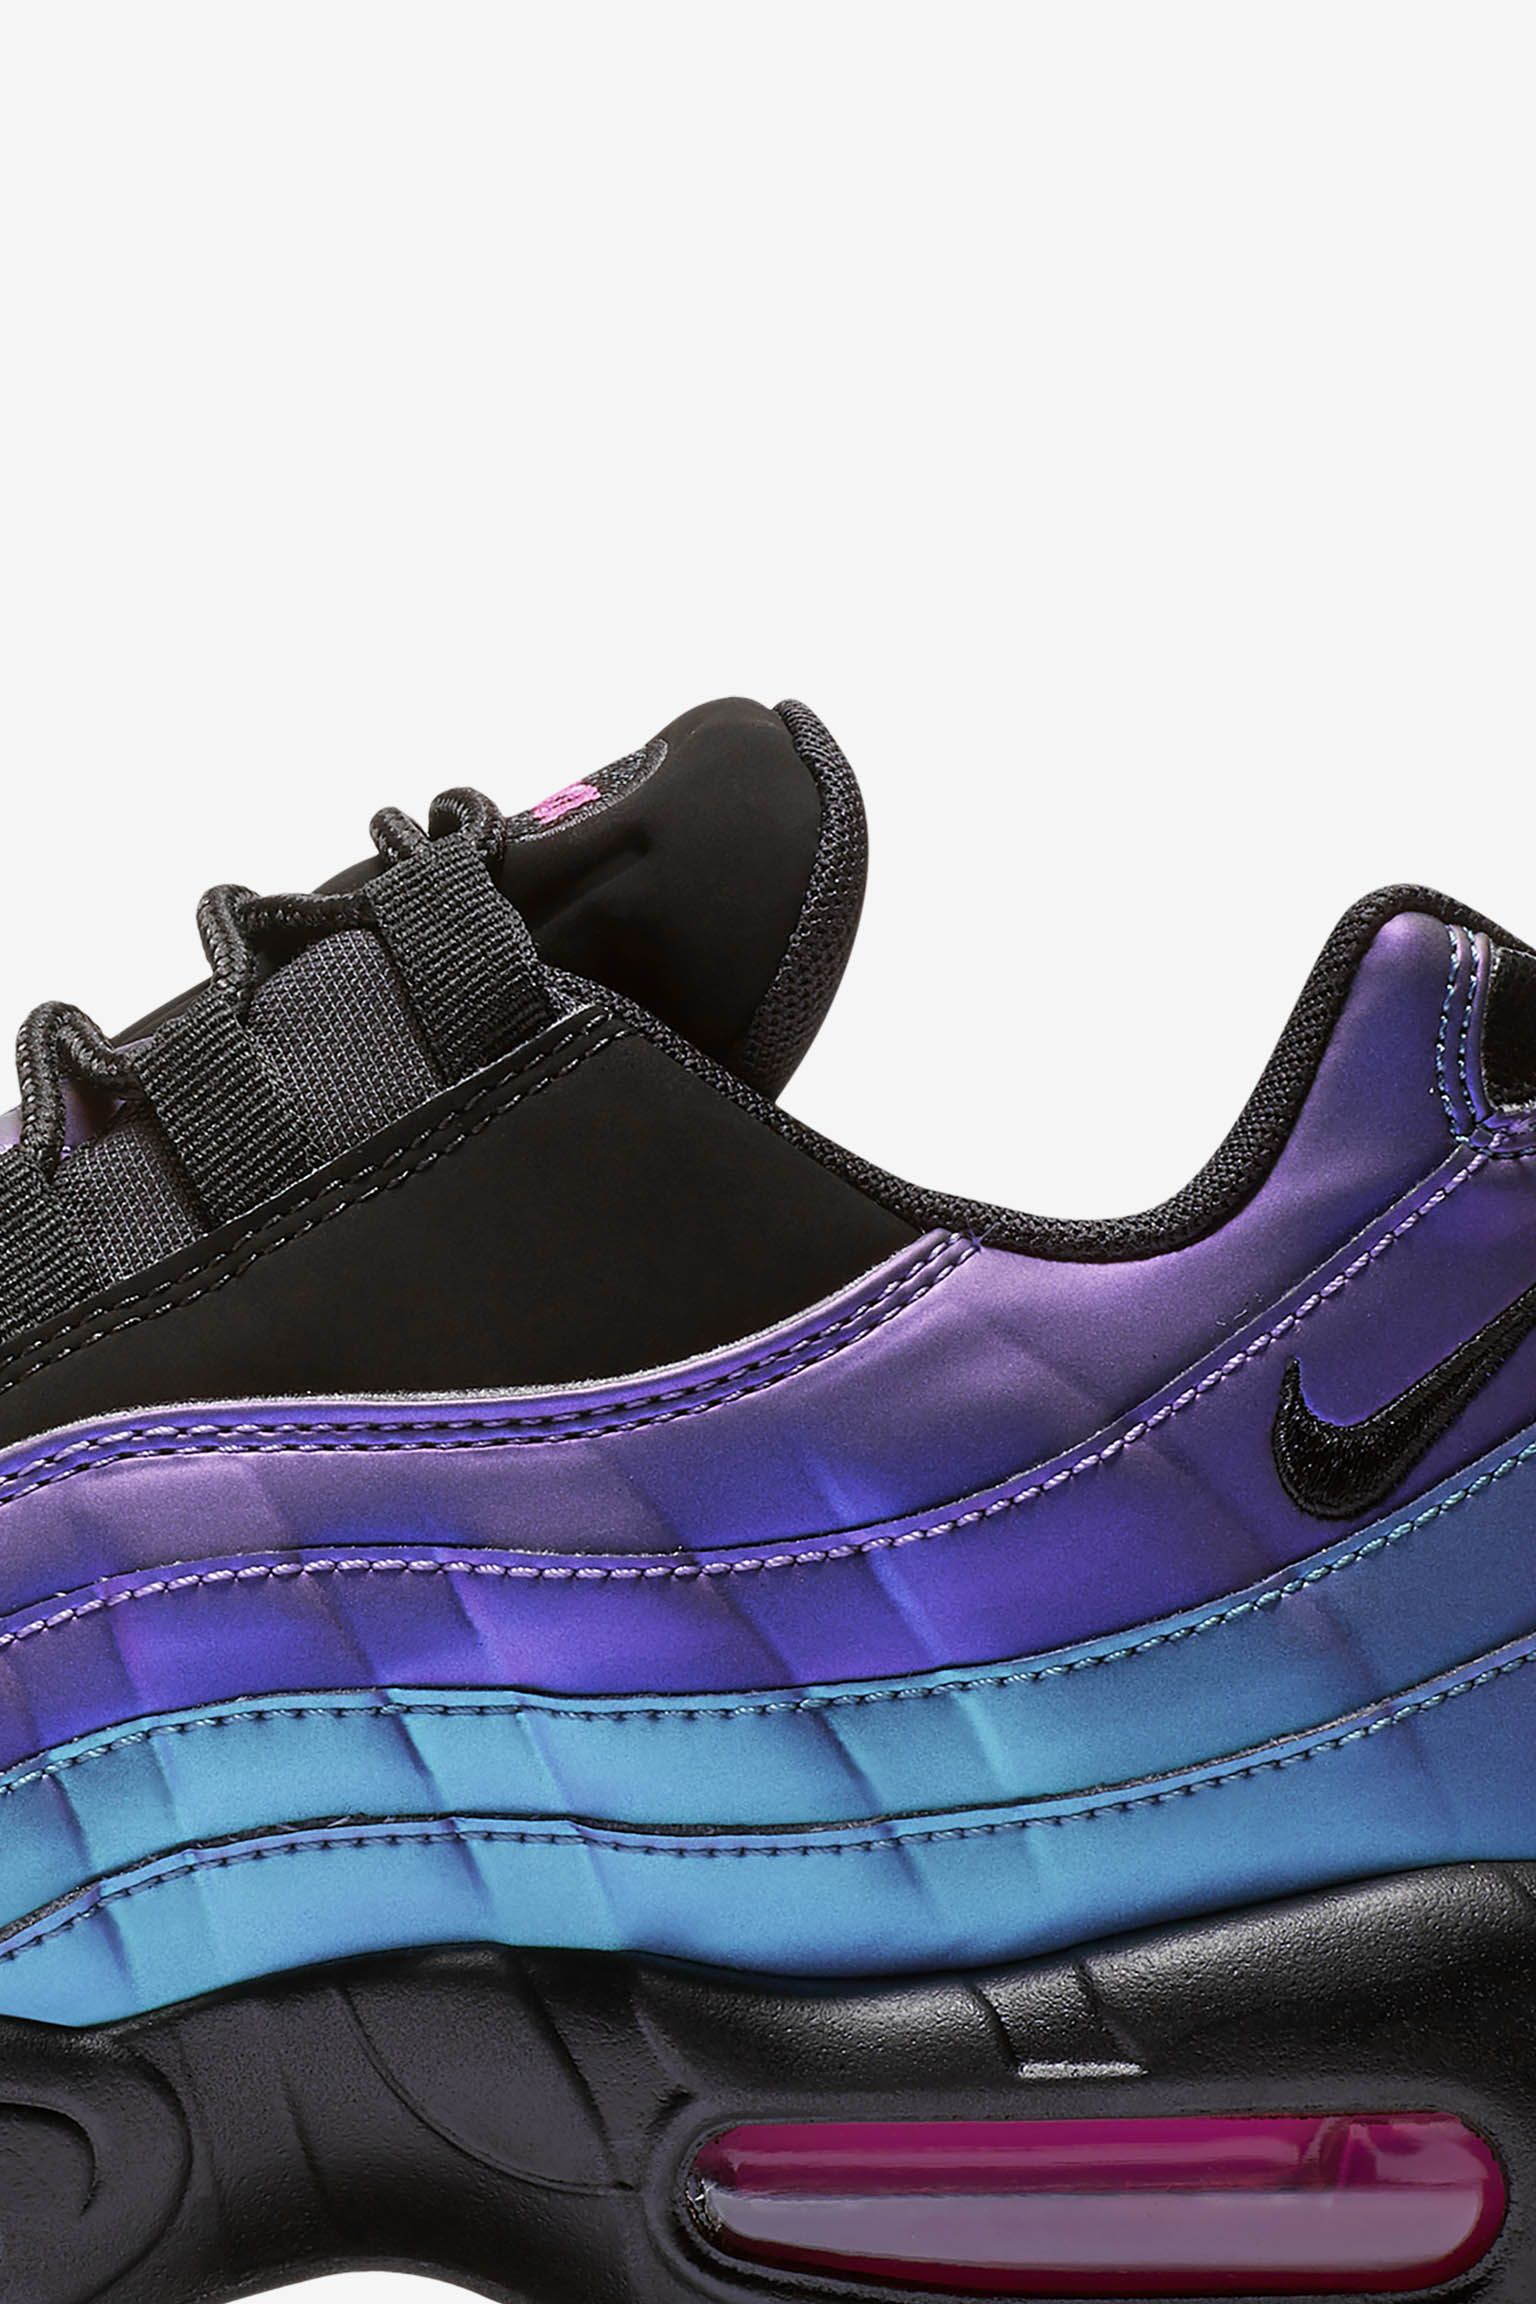 Air Max 95 'Throwback Future' Release Date